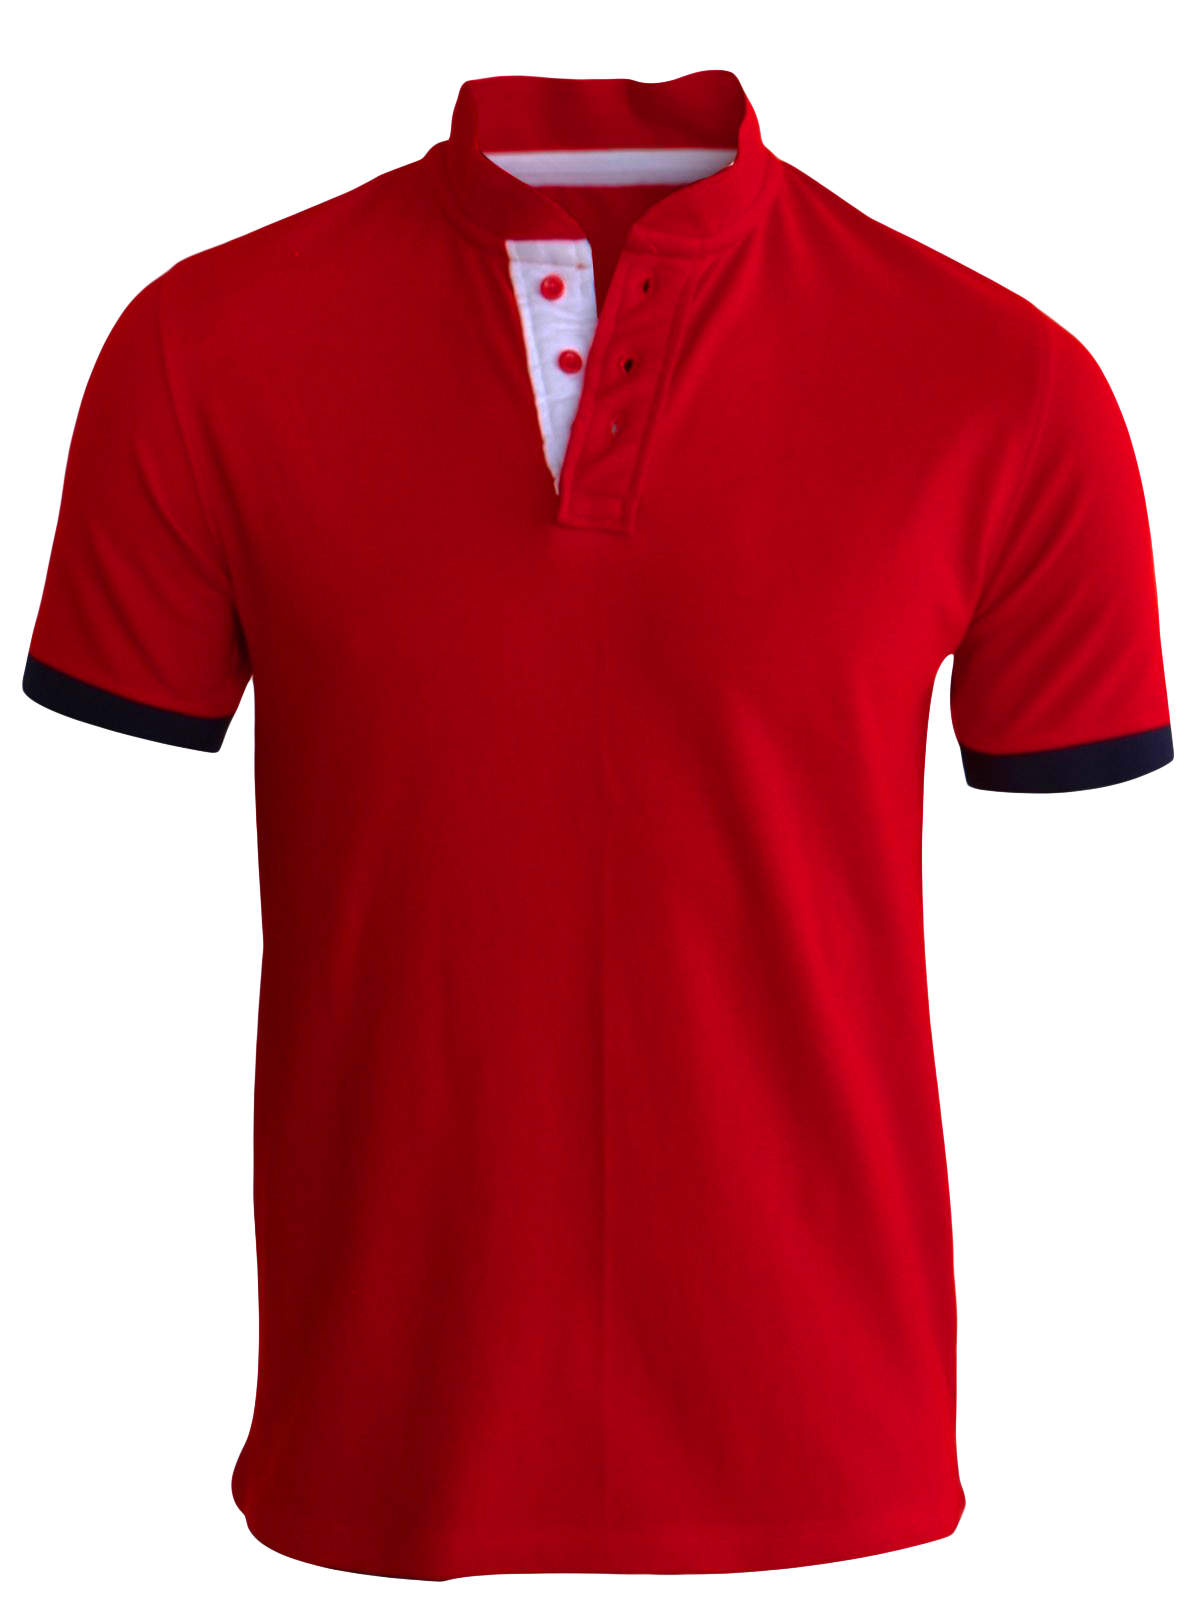 Red t shirt image. Tshirt png graphic royalty free download